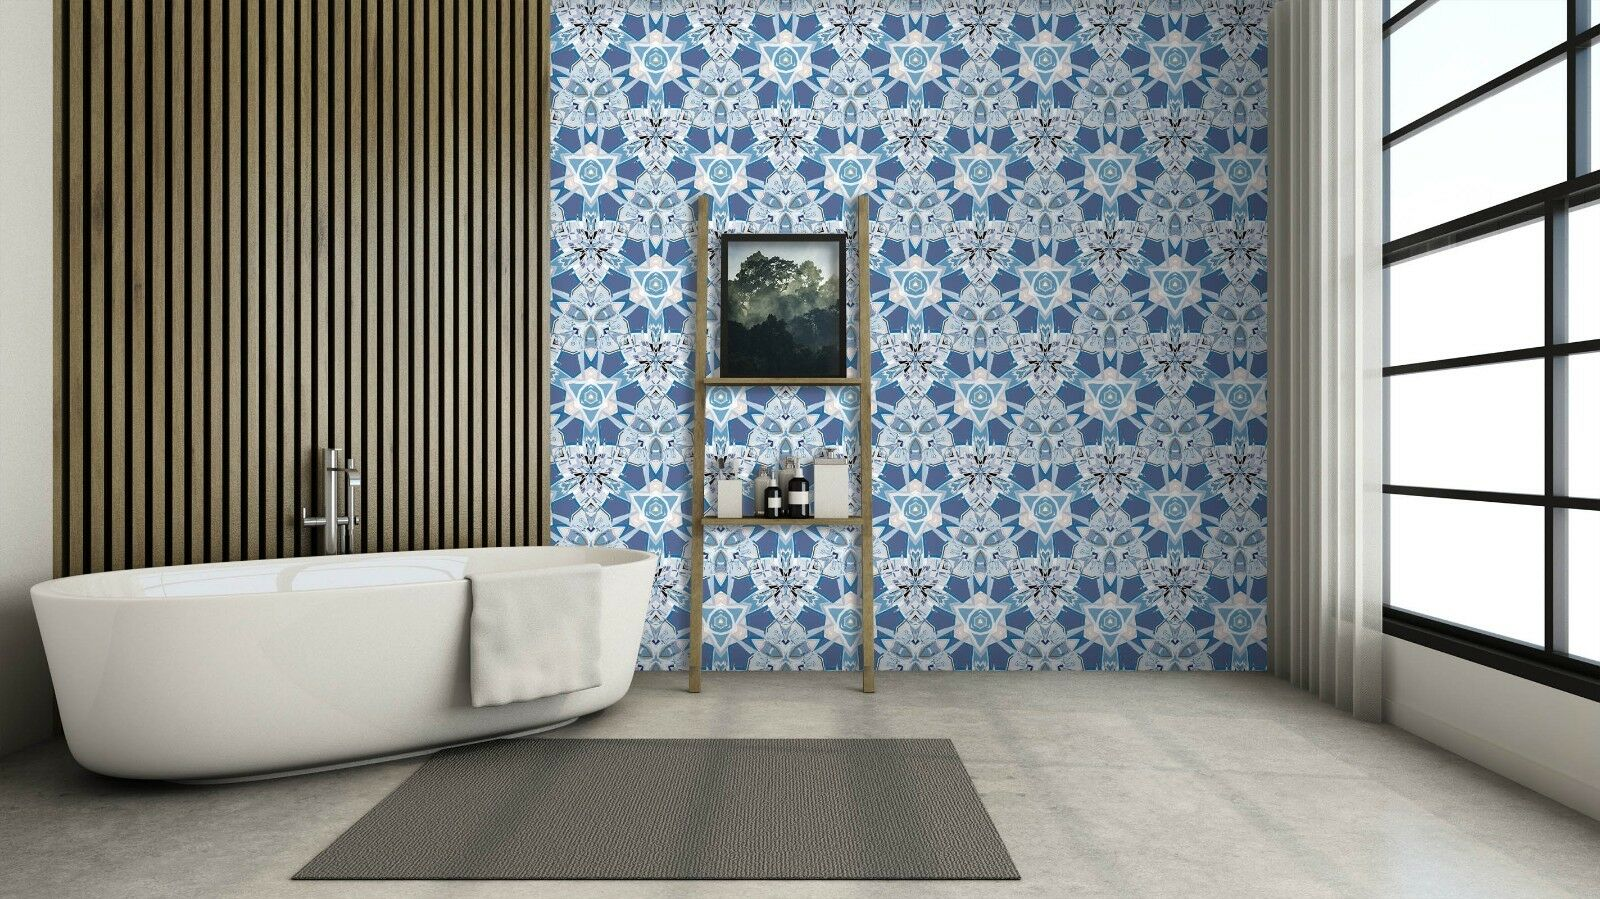 3D Abstract Blau Rose 1 Texture Tiles Marble Wall Paper Decal Wallpaper Mural AJ